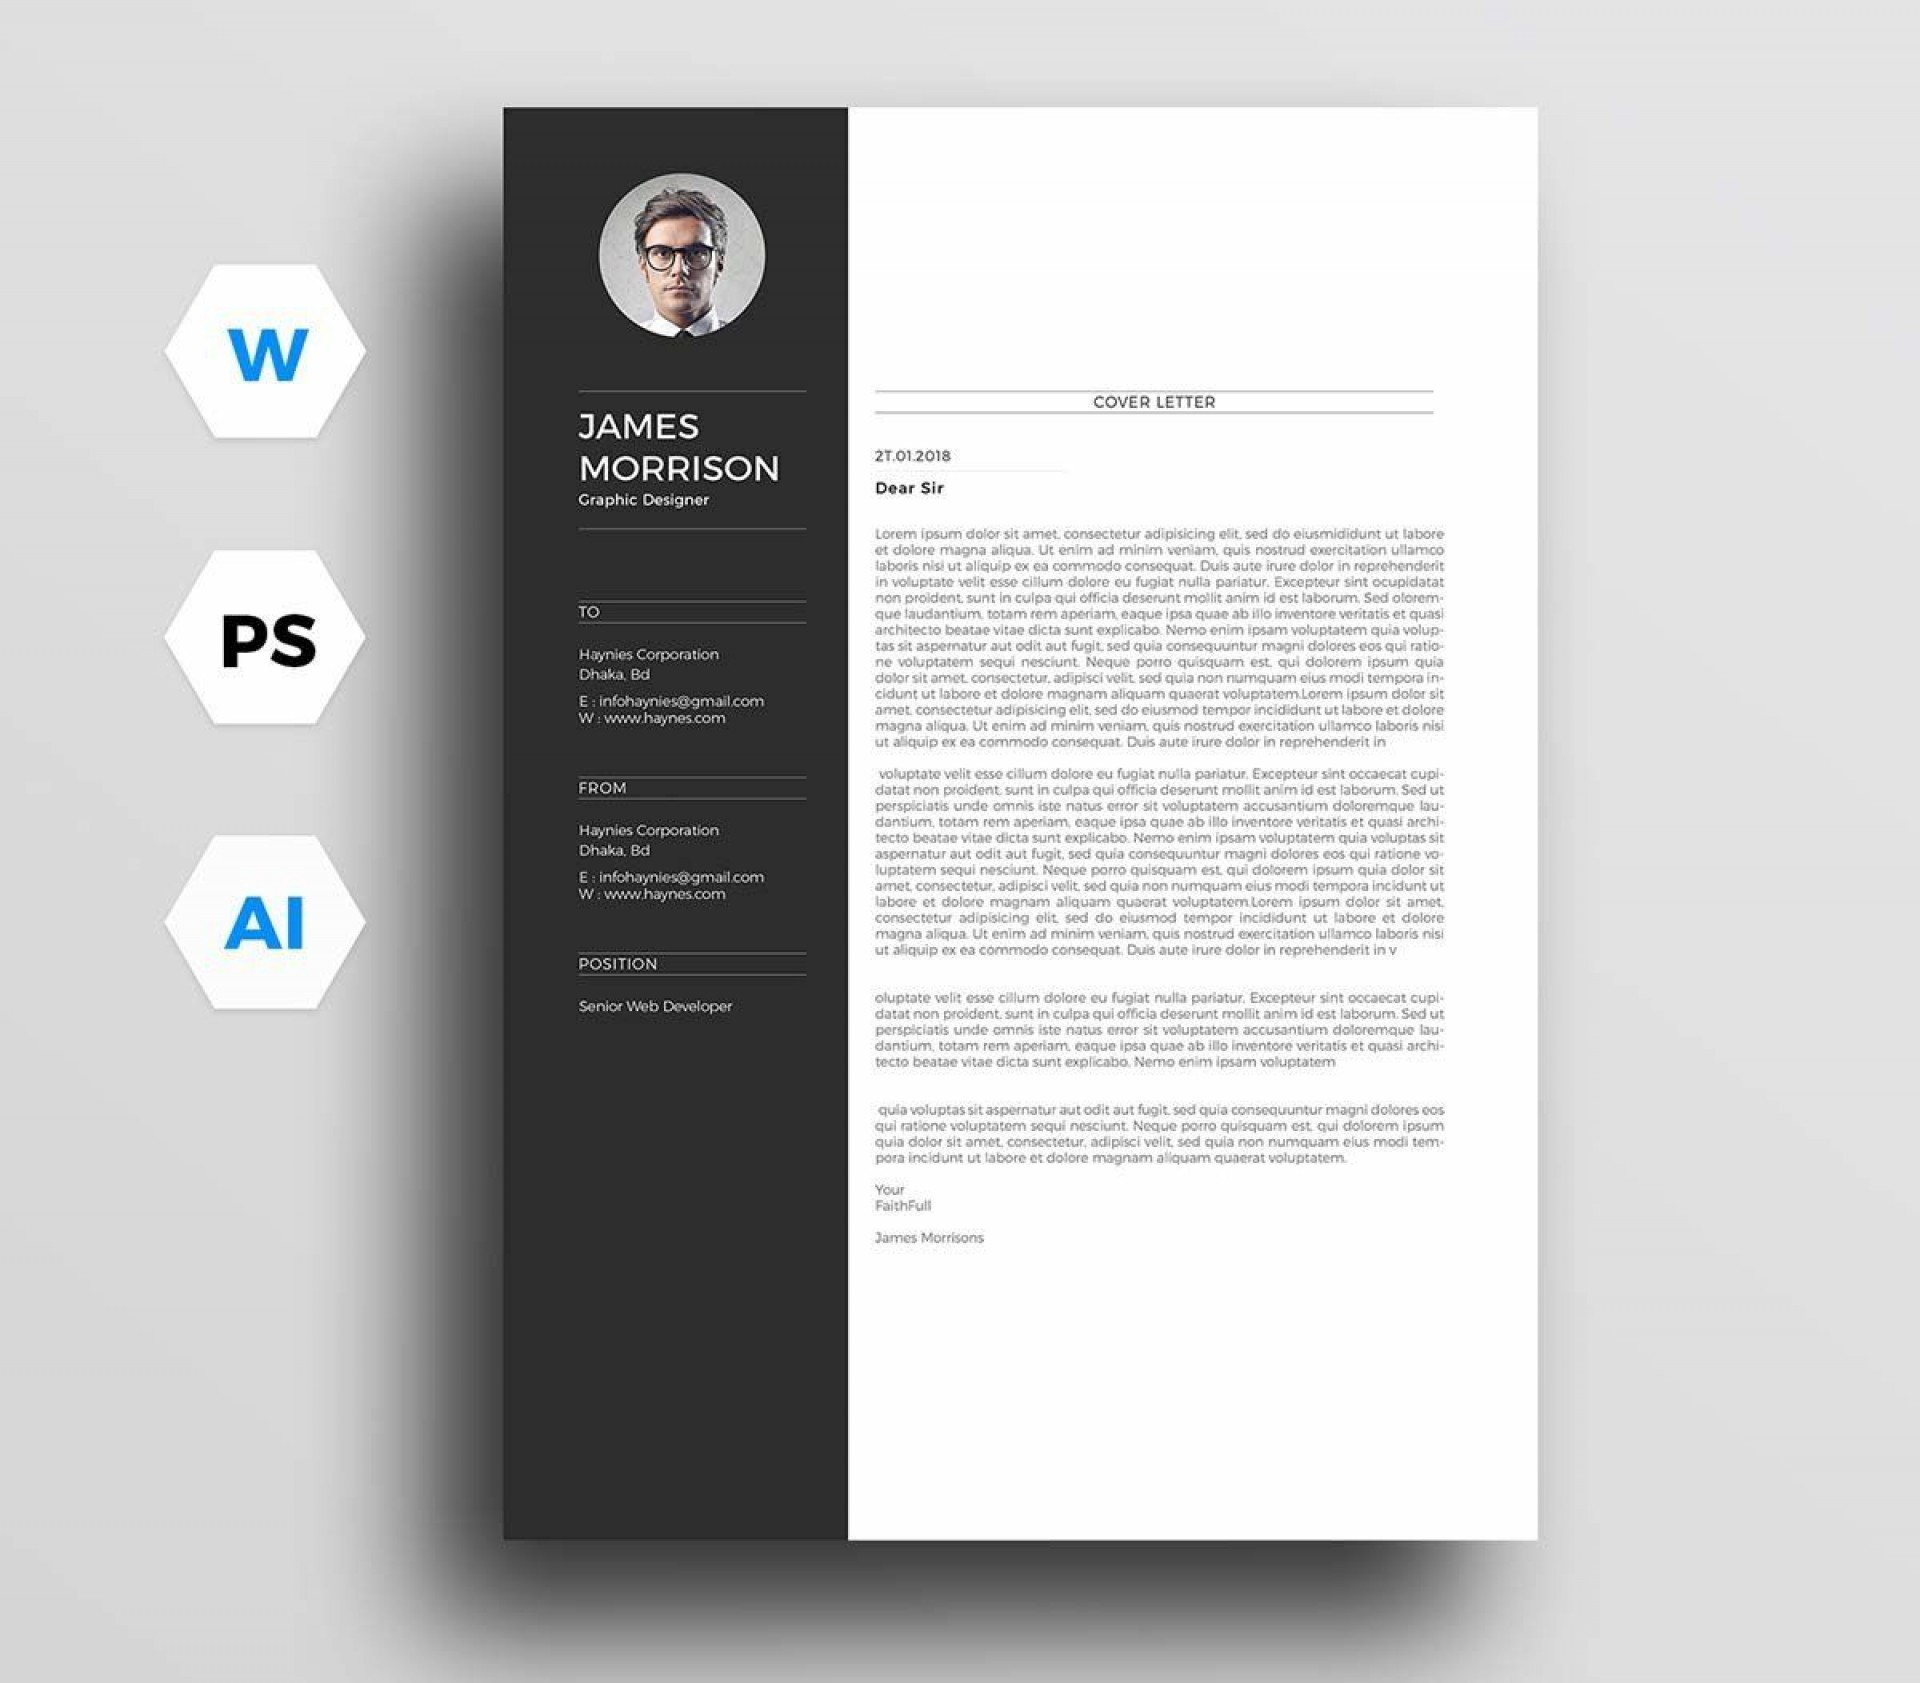 003 Astounding Microsoft Cover Letter Template Image  Templates Free Resume Word Download 2010 Page1920